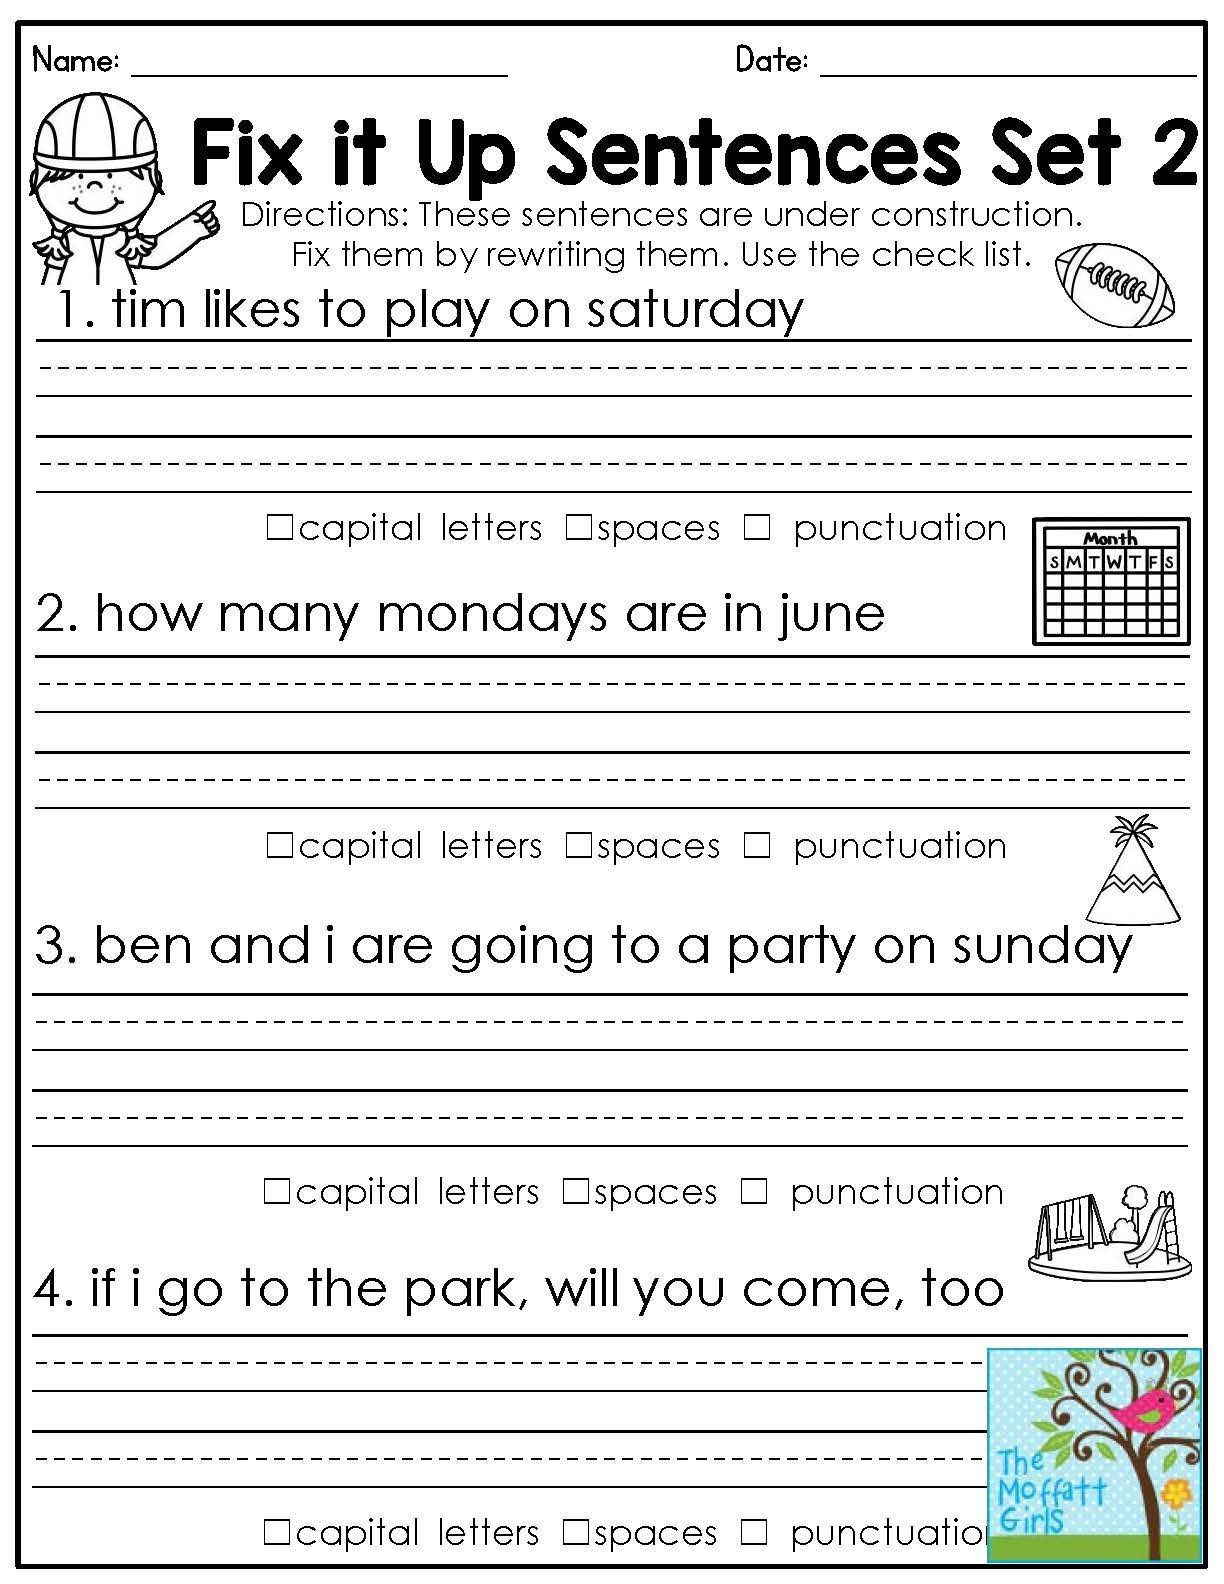 Comma Worksheets 2nd Grade 6 General Proofreading Worksheets 2nd Grade In 2020